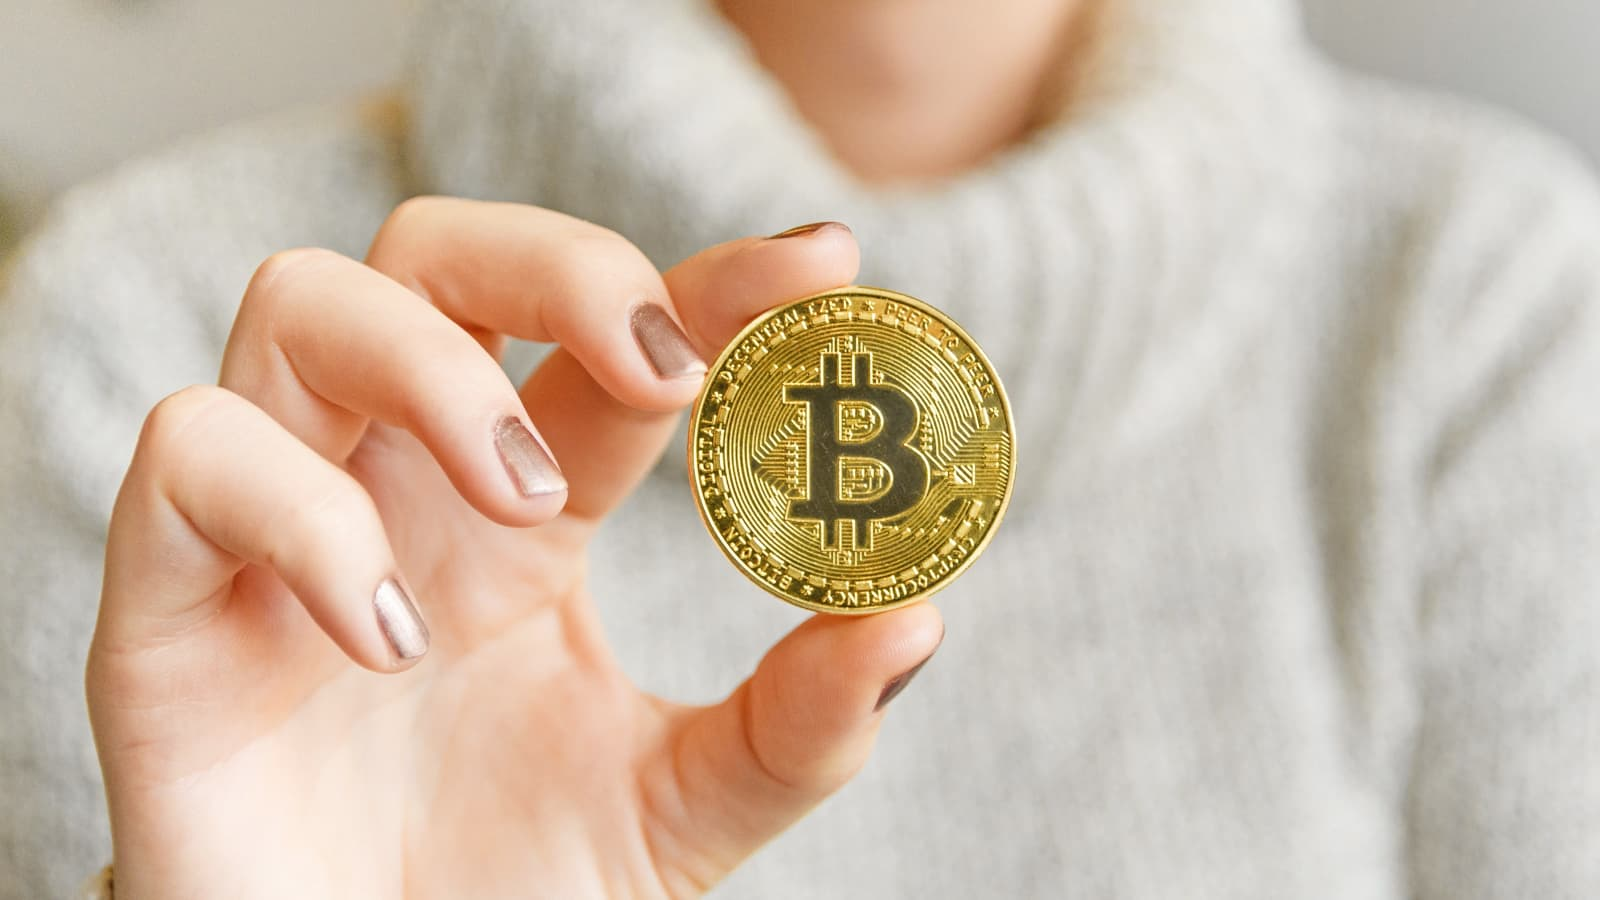 Discover The Keys To Gaining An Awesome Revenue Trading Bitcoin